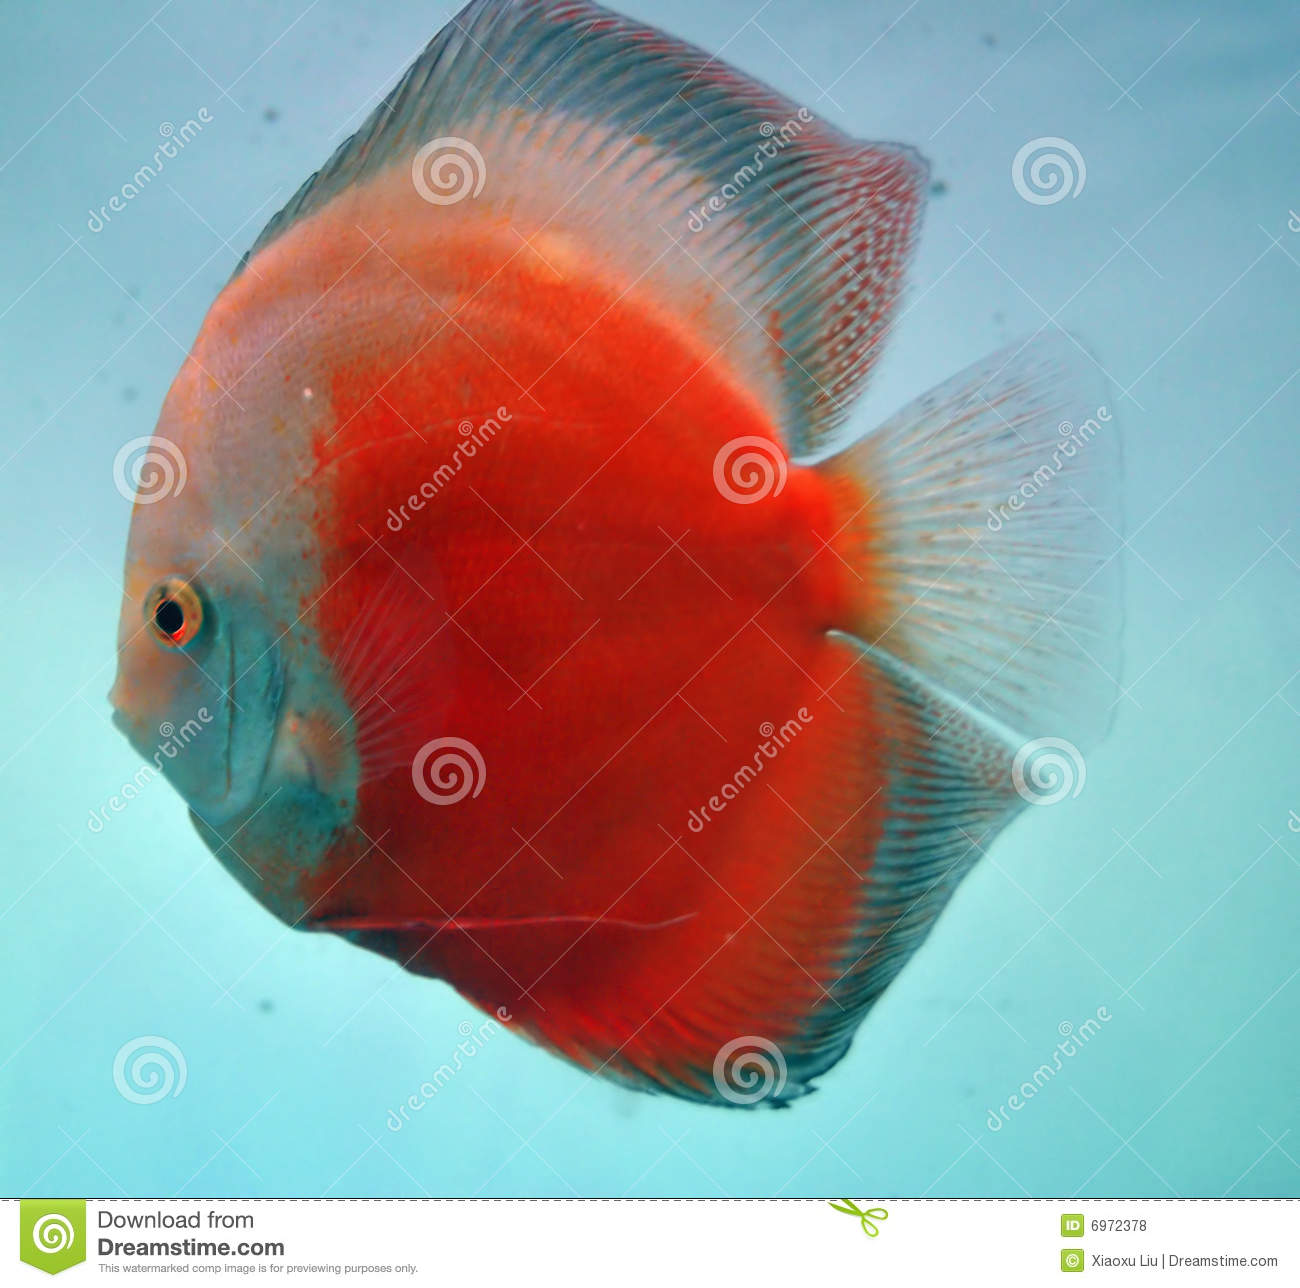 Discus fish royalty free stock photos image 6972378 for Dream of fish swimming